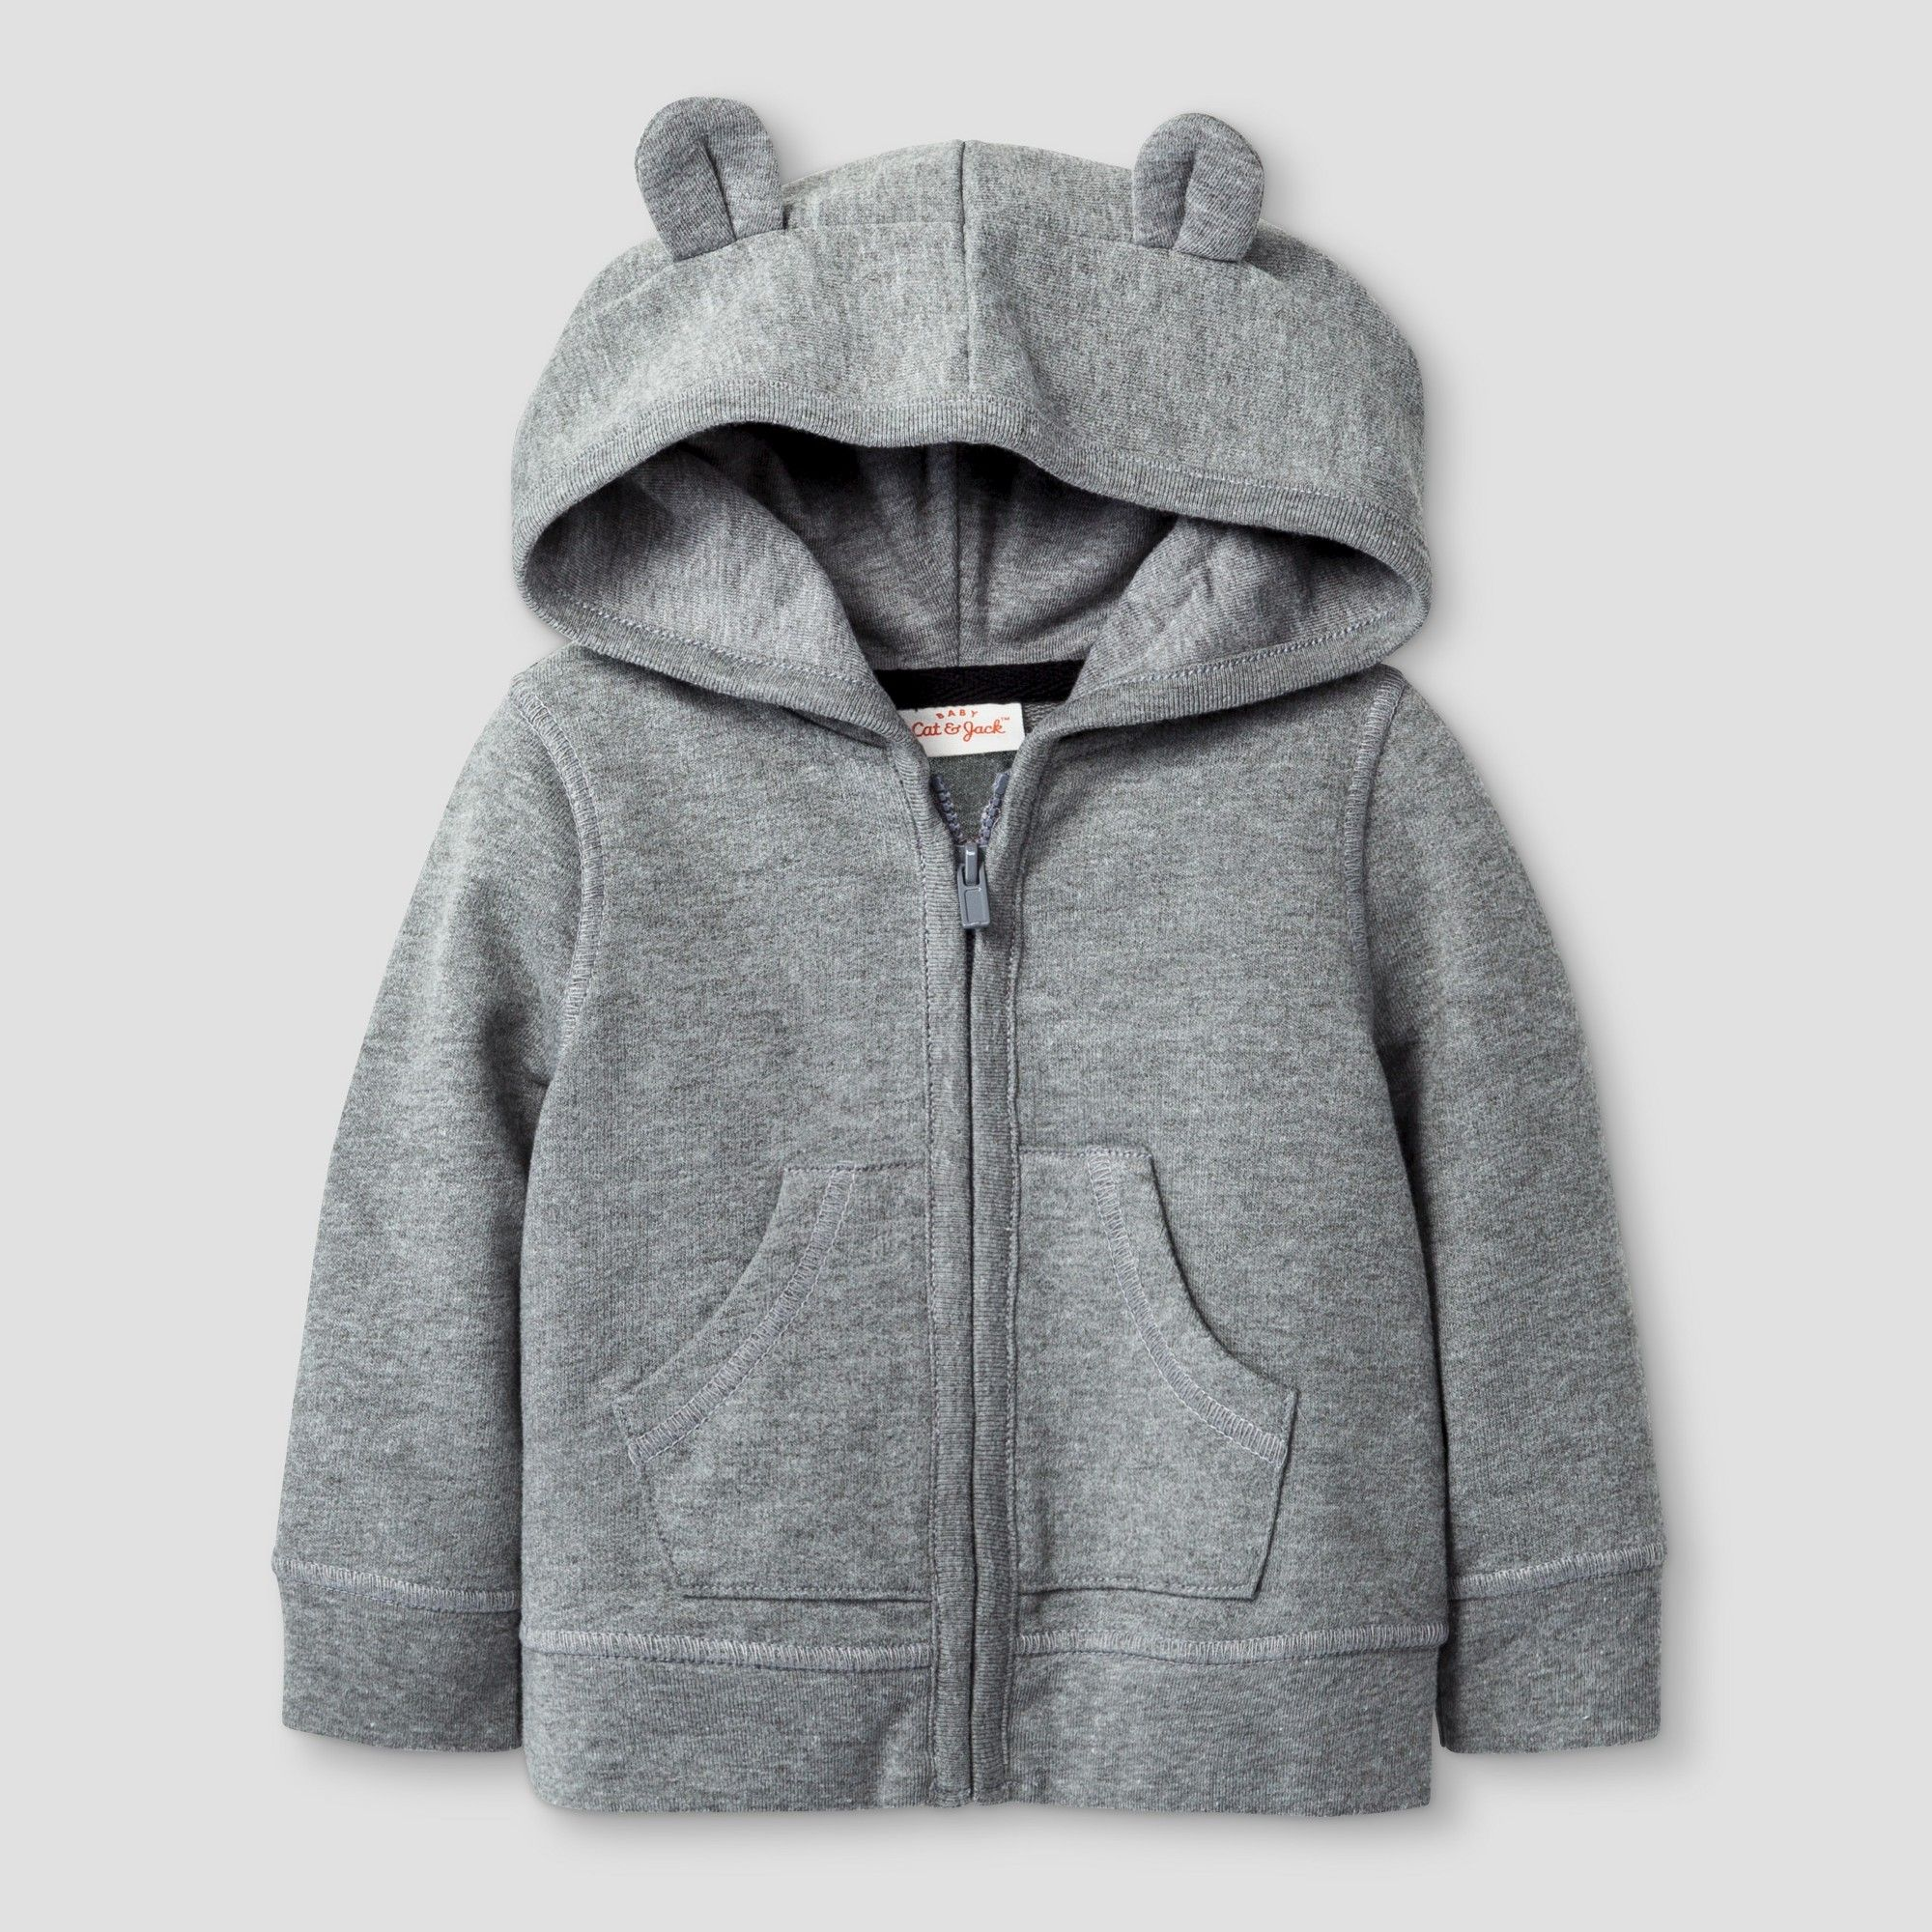 21153a4a Baby Bear Hoodie Cat & Jack - Radiant Gray 0-3M, Infant Girl's, Size ...